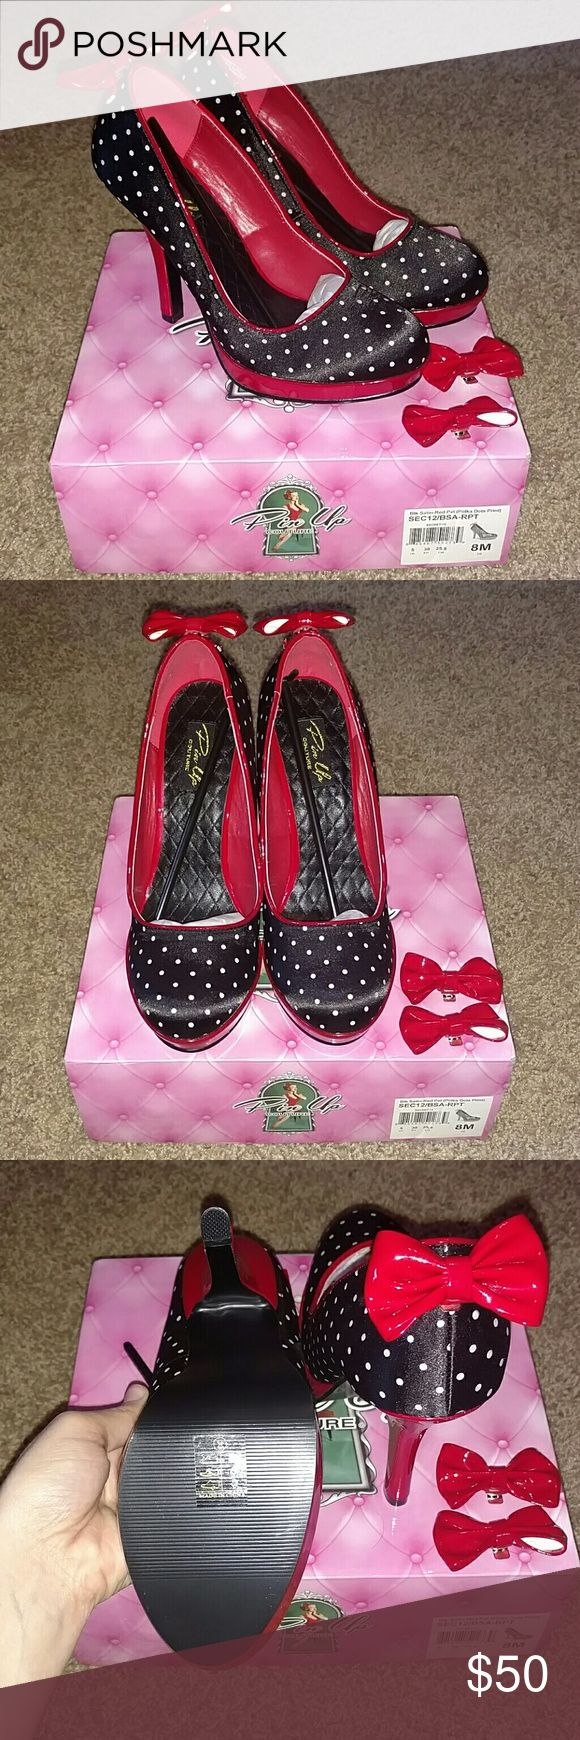 Pinup Couture Heels Brand New! Never worn, Black and Red Satin with Polka dots, also all the red bows are clips, you can wear them without bows. These heels run small, fit more like a 7. Shoes Heels